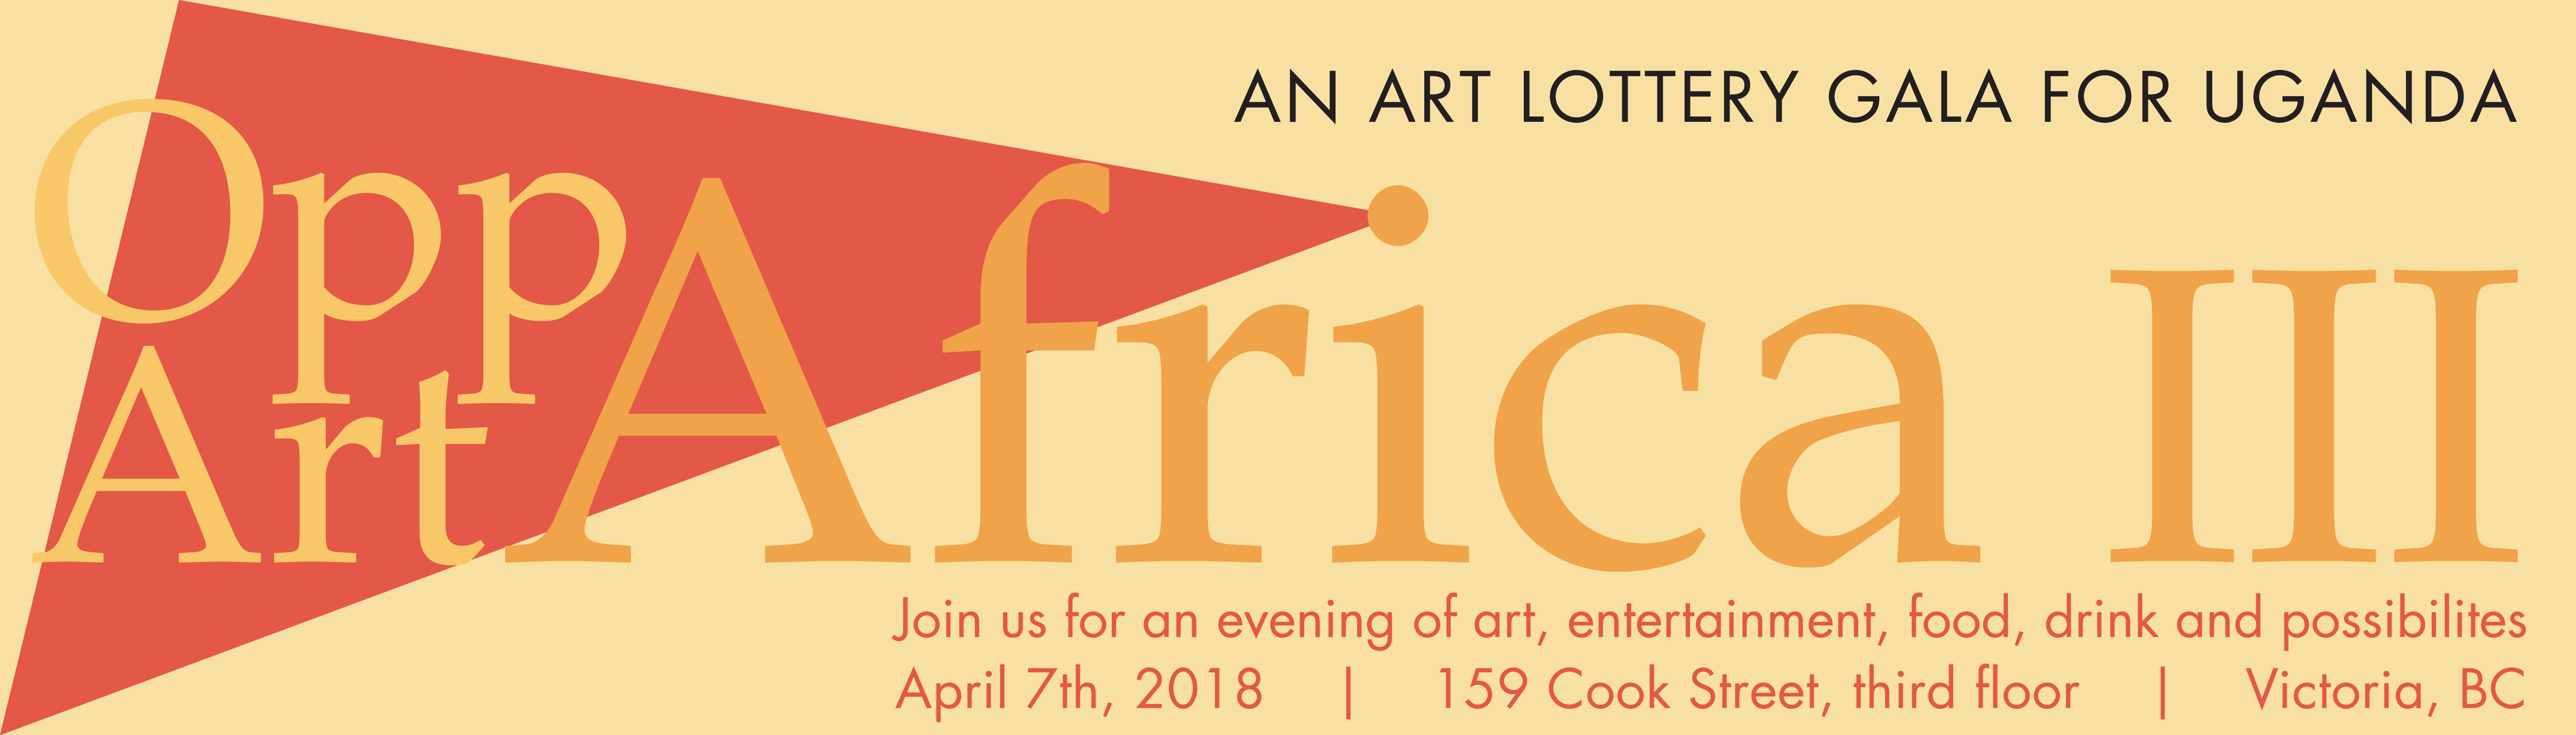 An Art Lottery Gala for Uganda